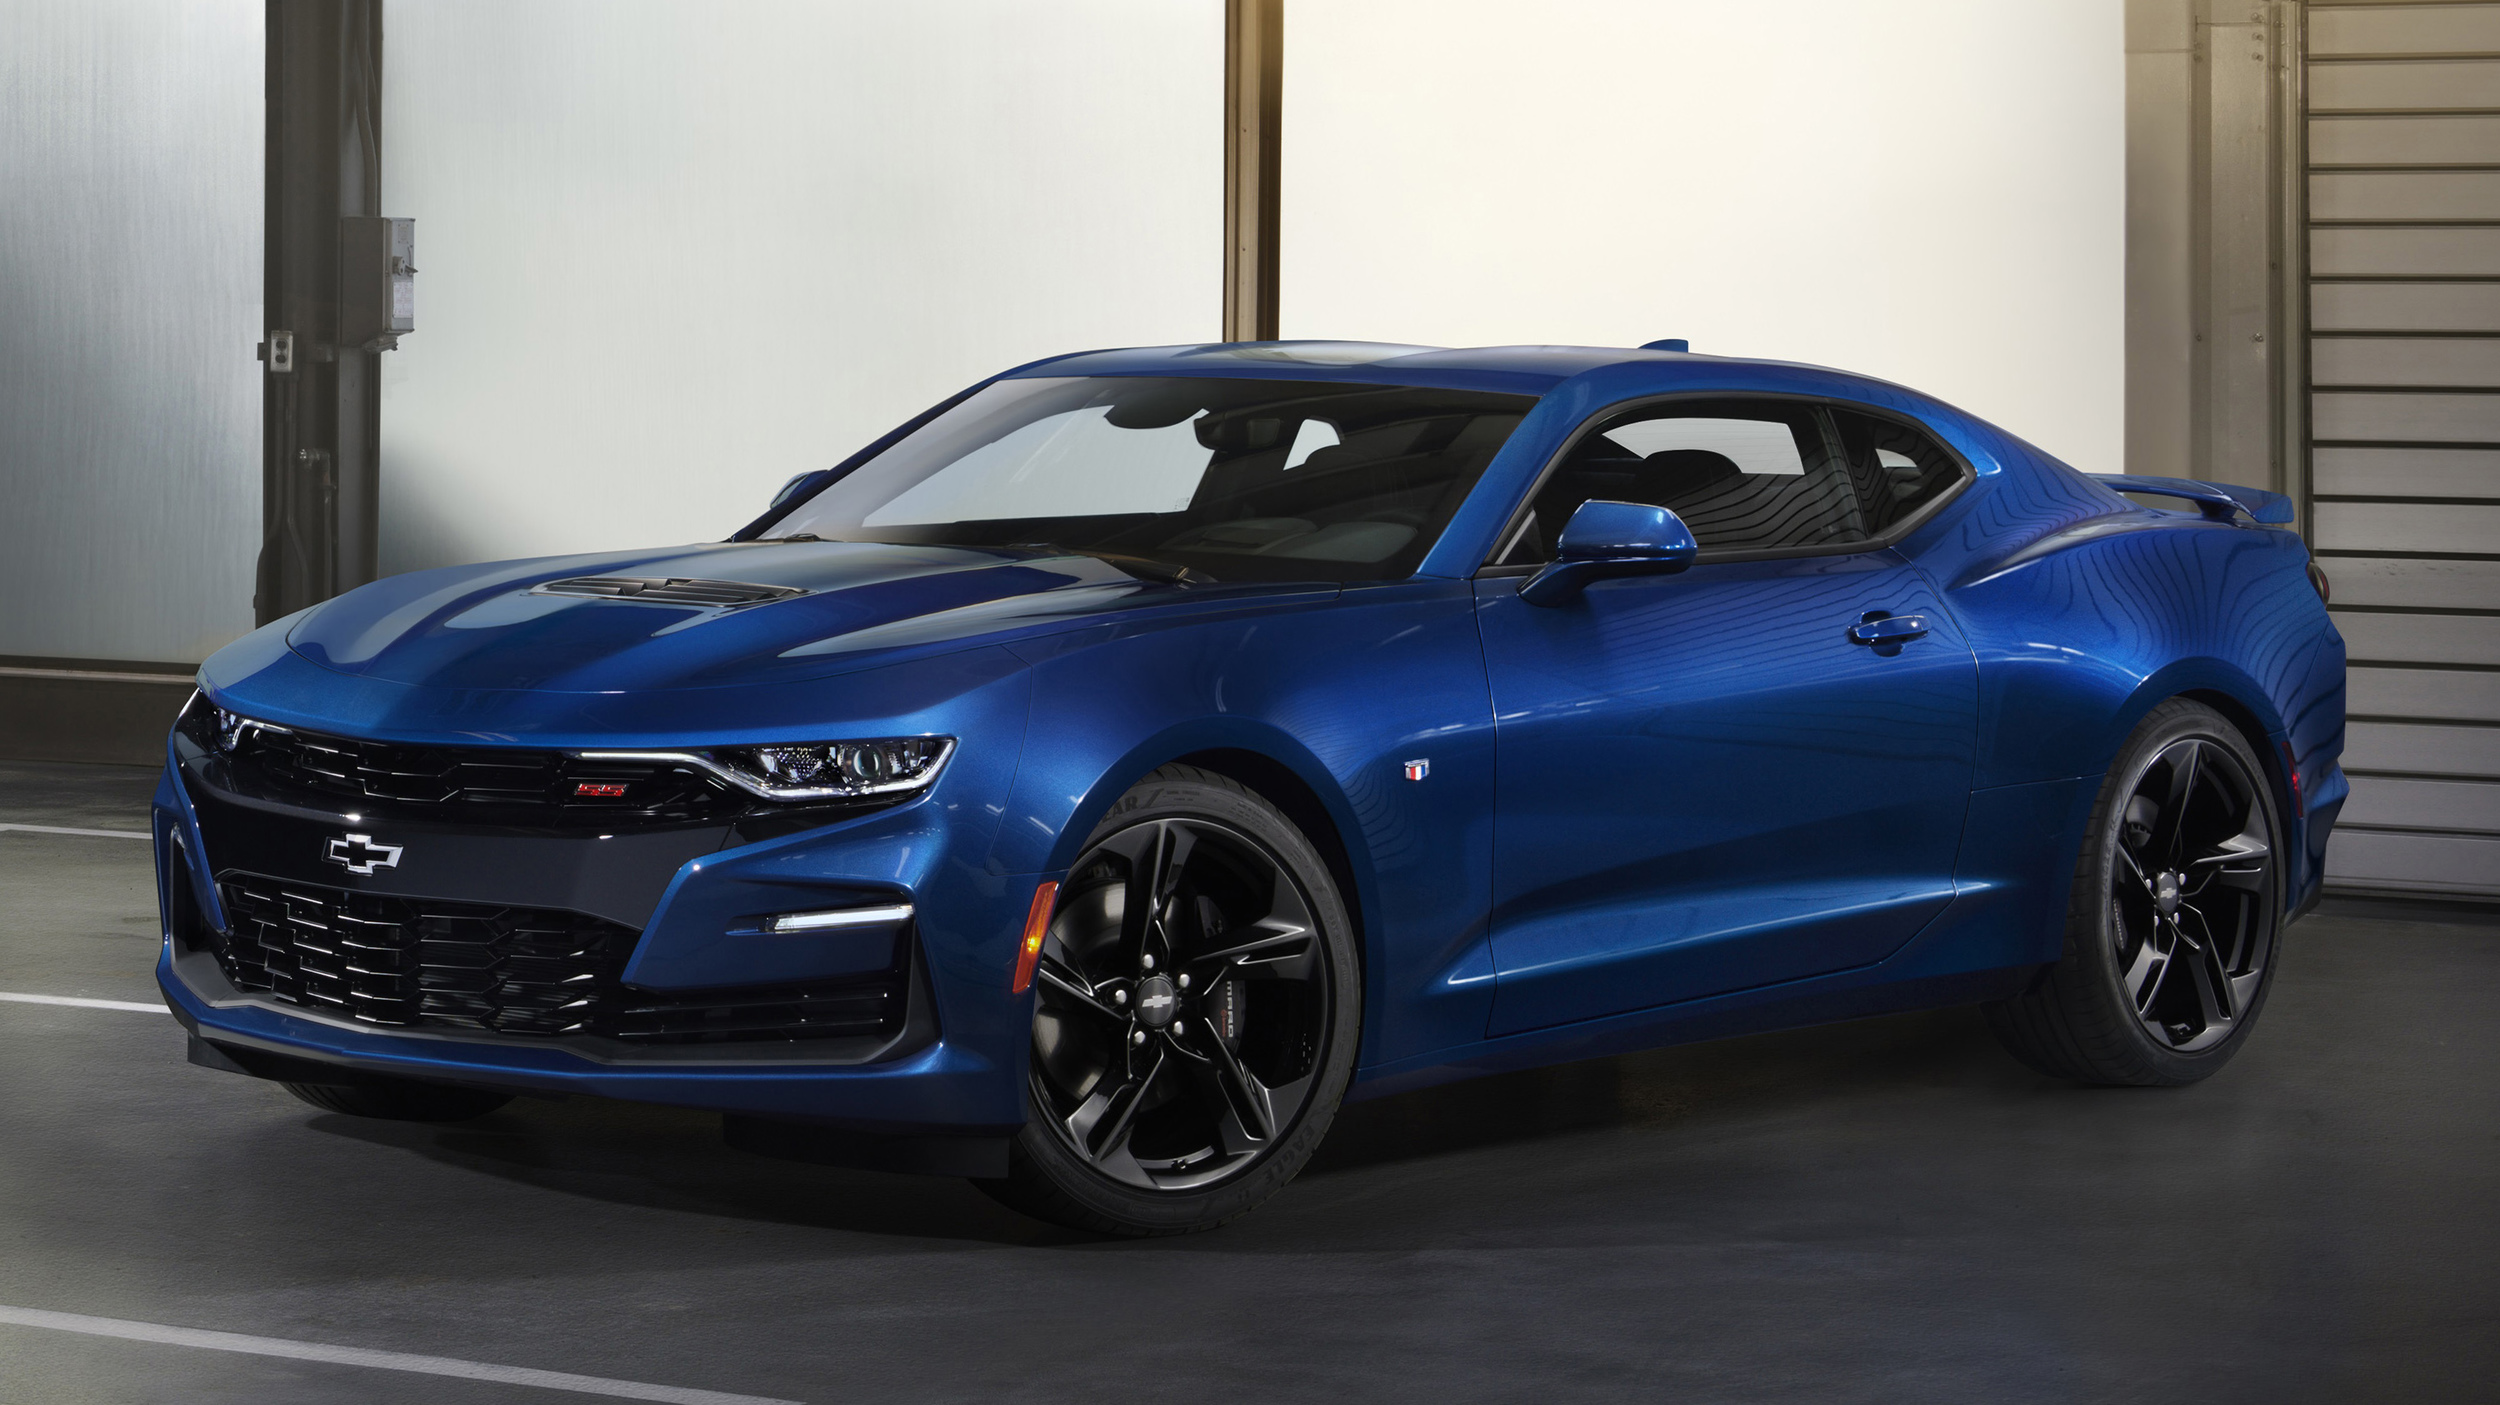 is roads a camaro news hampton newport chevrolet new in casey and car dealer